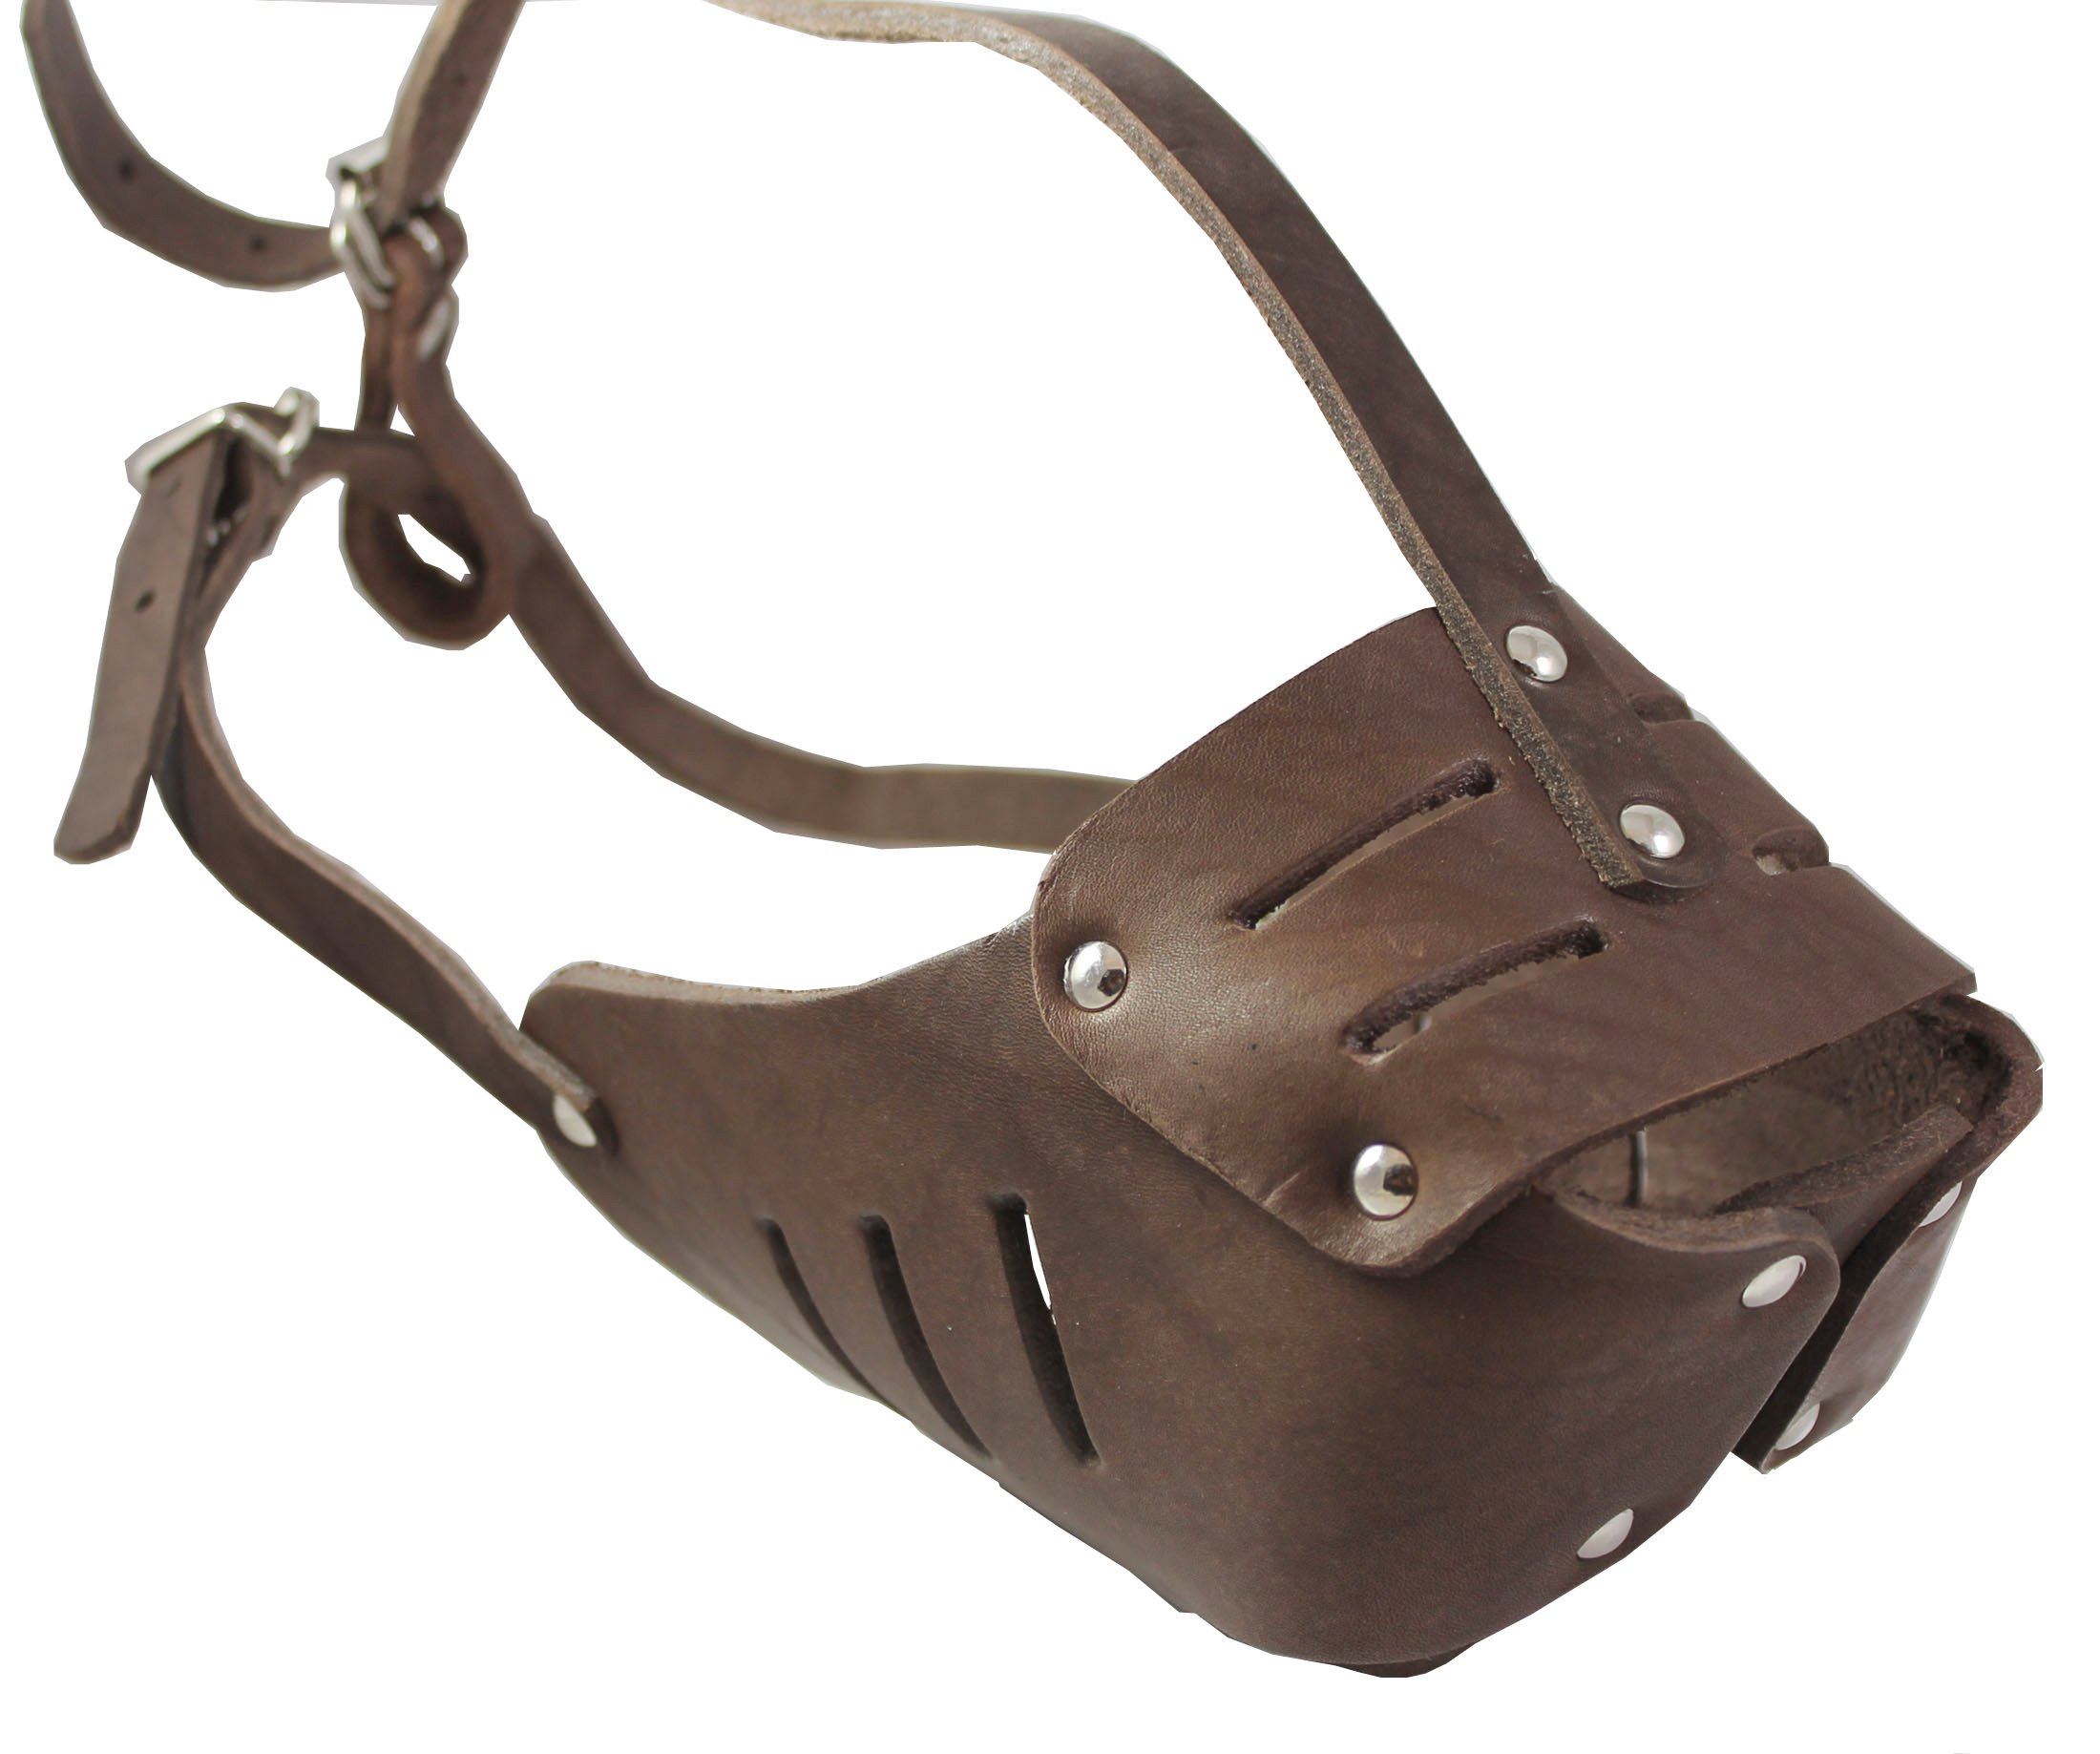 Real Leather Cage Basket Secure Dog Muzzle #130 Brown - Rottweiler, Boxer (Circumference 13.5'', Snout Length 3.5'')